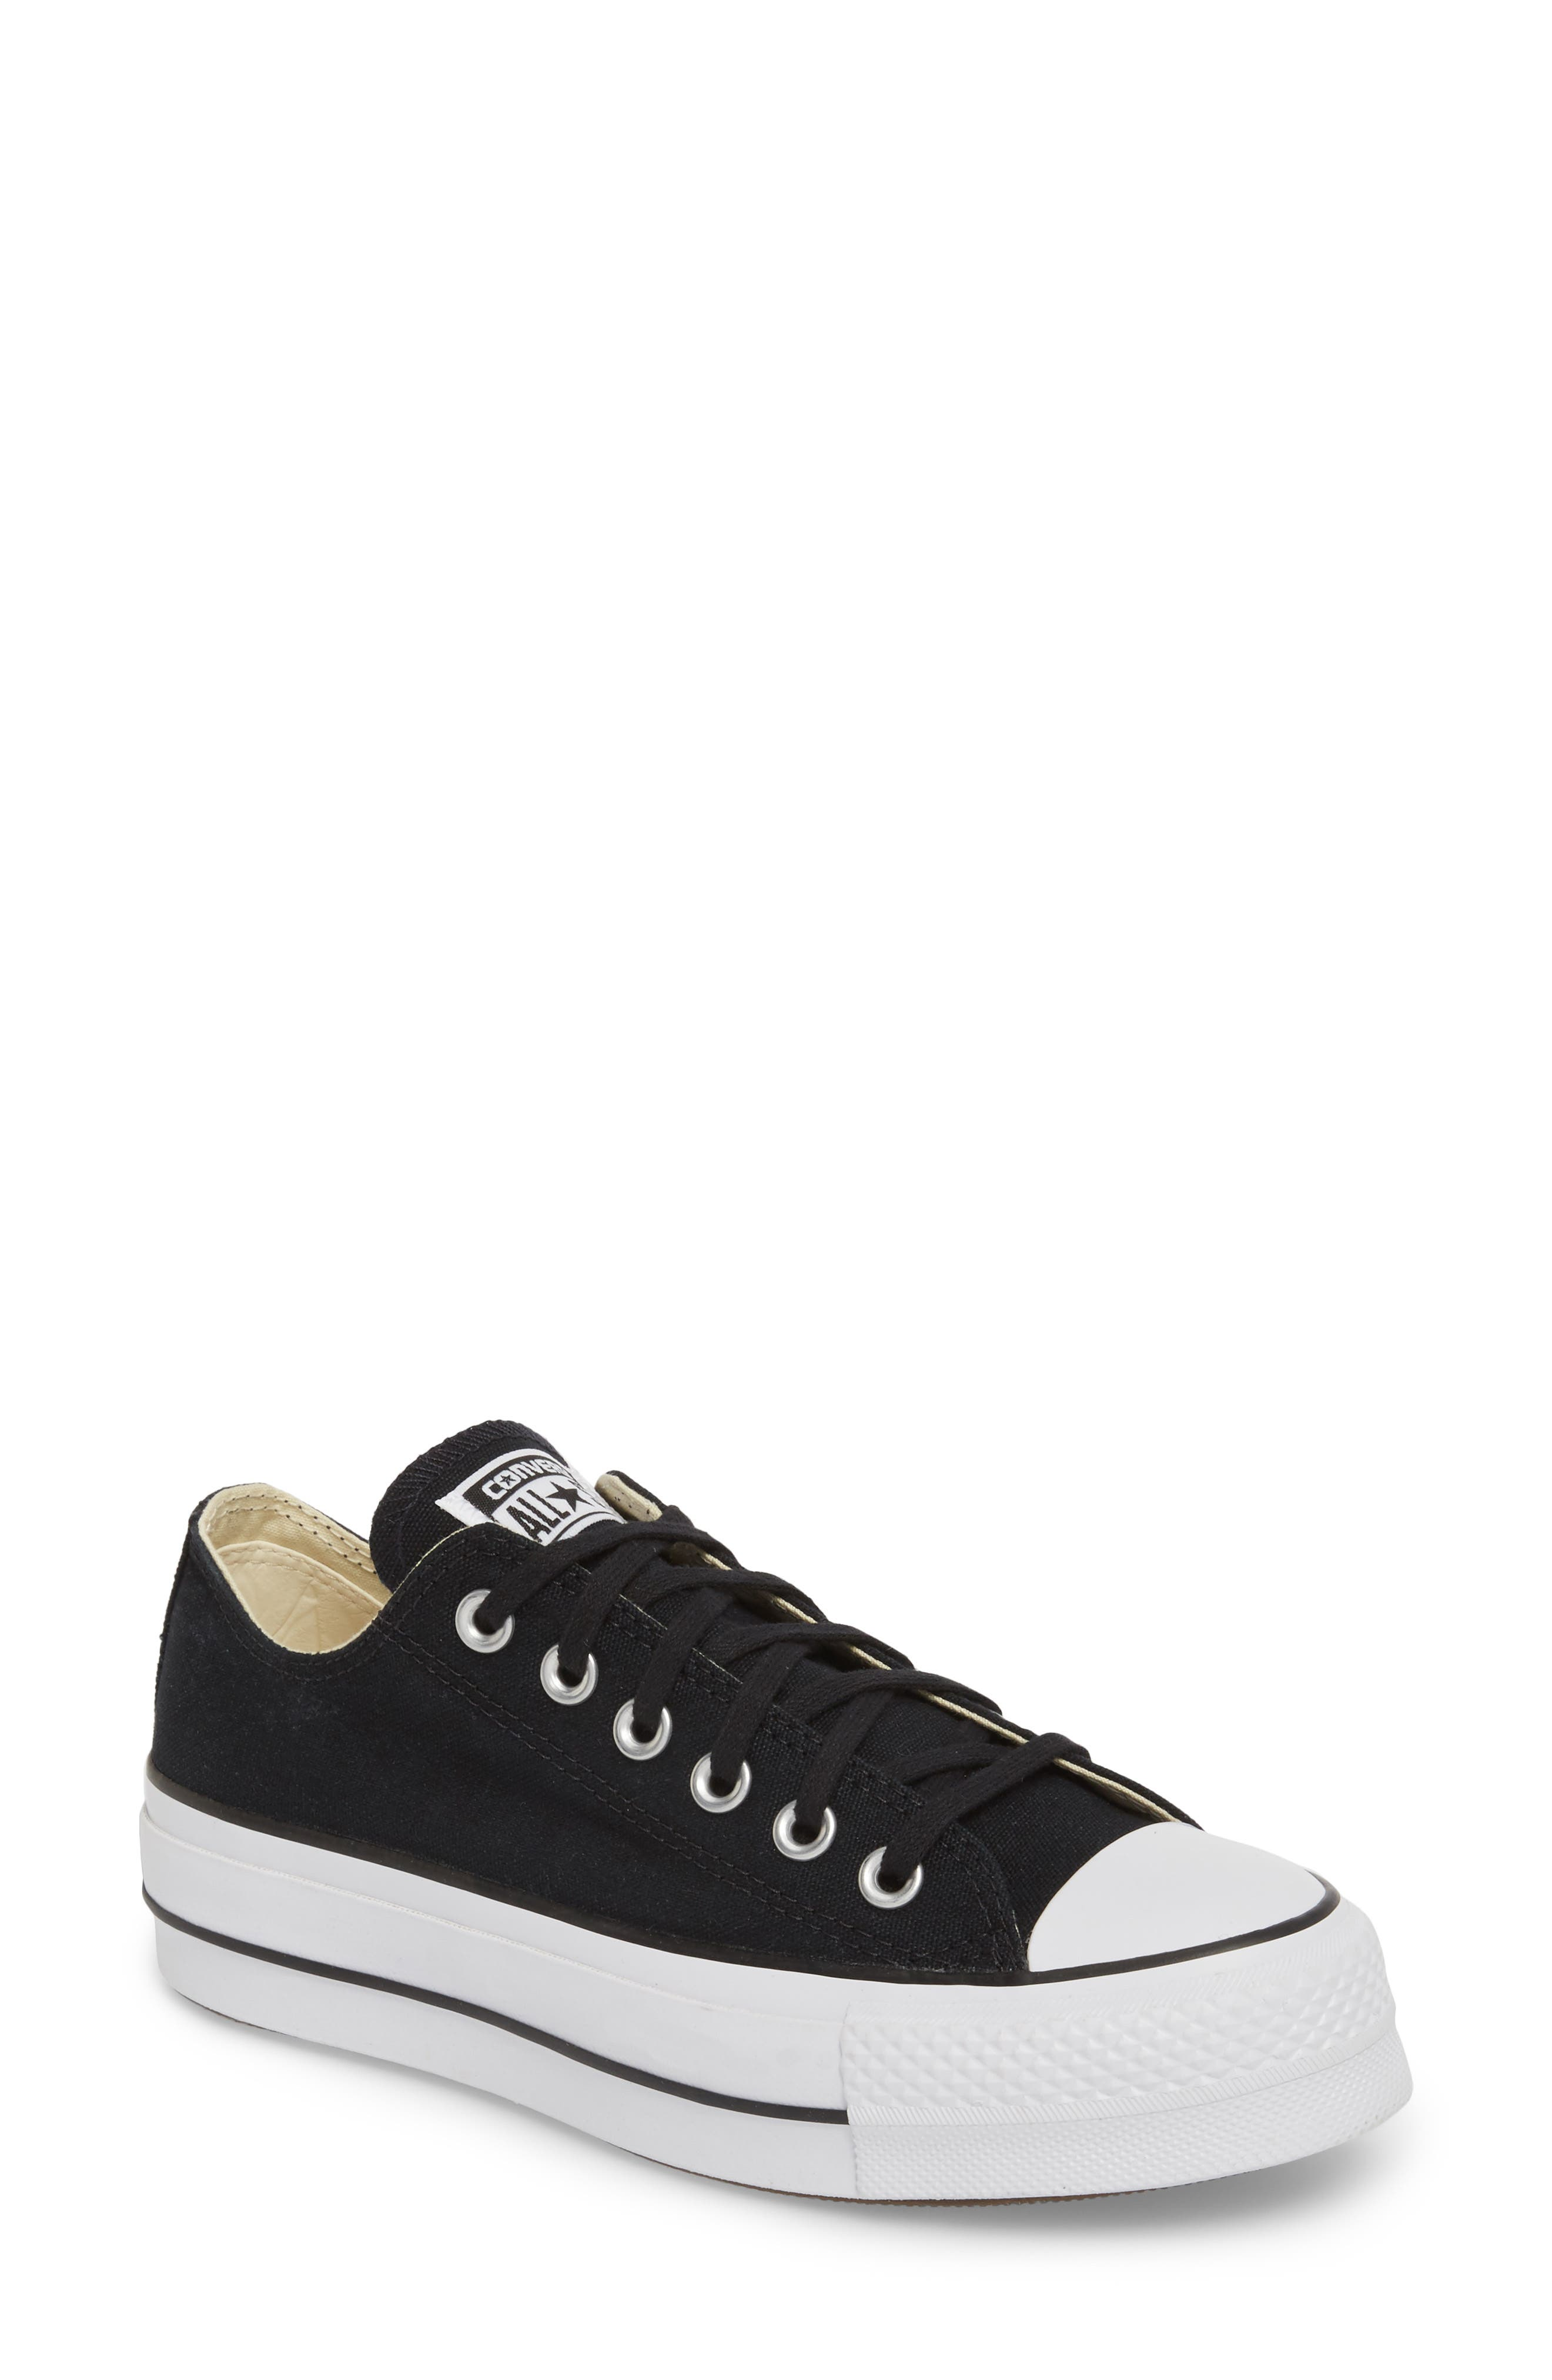 Chuck Taylor<sup>®</sup> All Star<sup>®</sup> Platform Sneaker,                         Main,                         color, BLACK/ WHITE/ WHITE